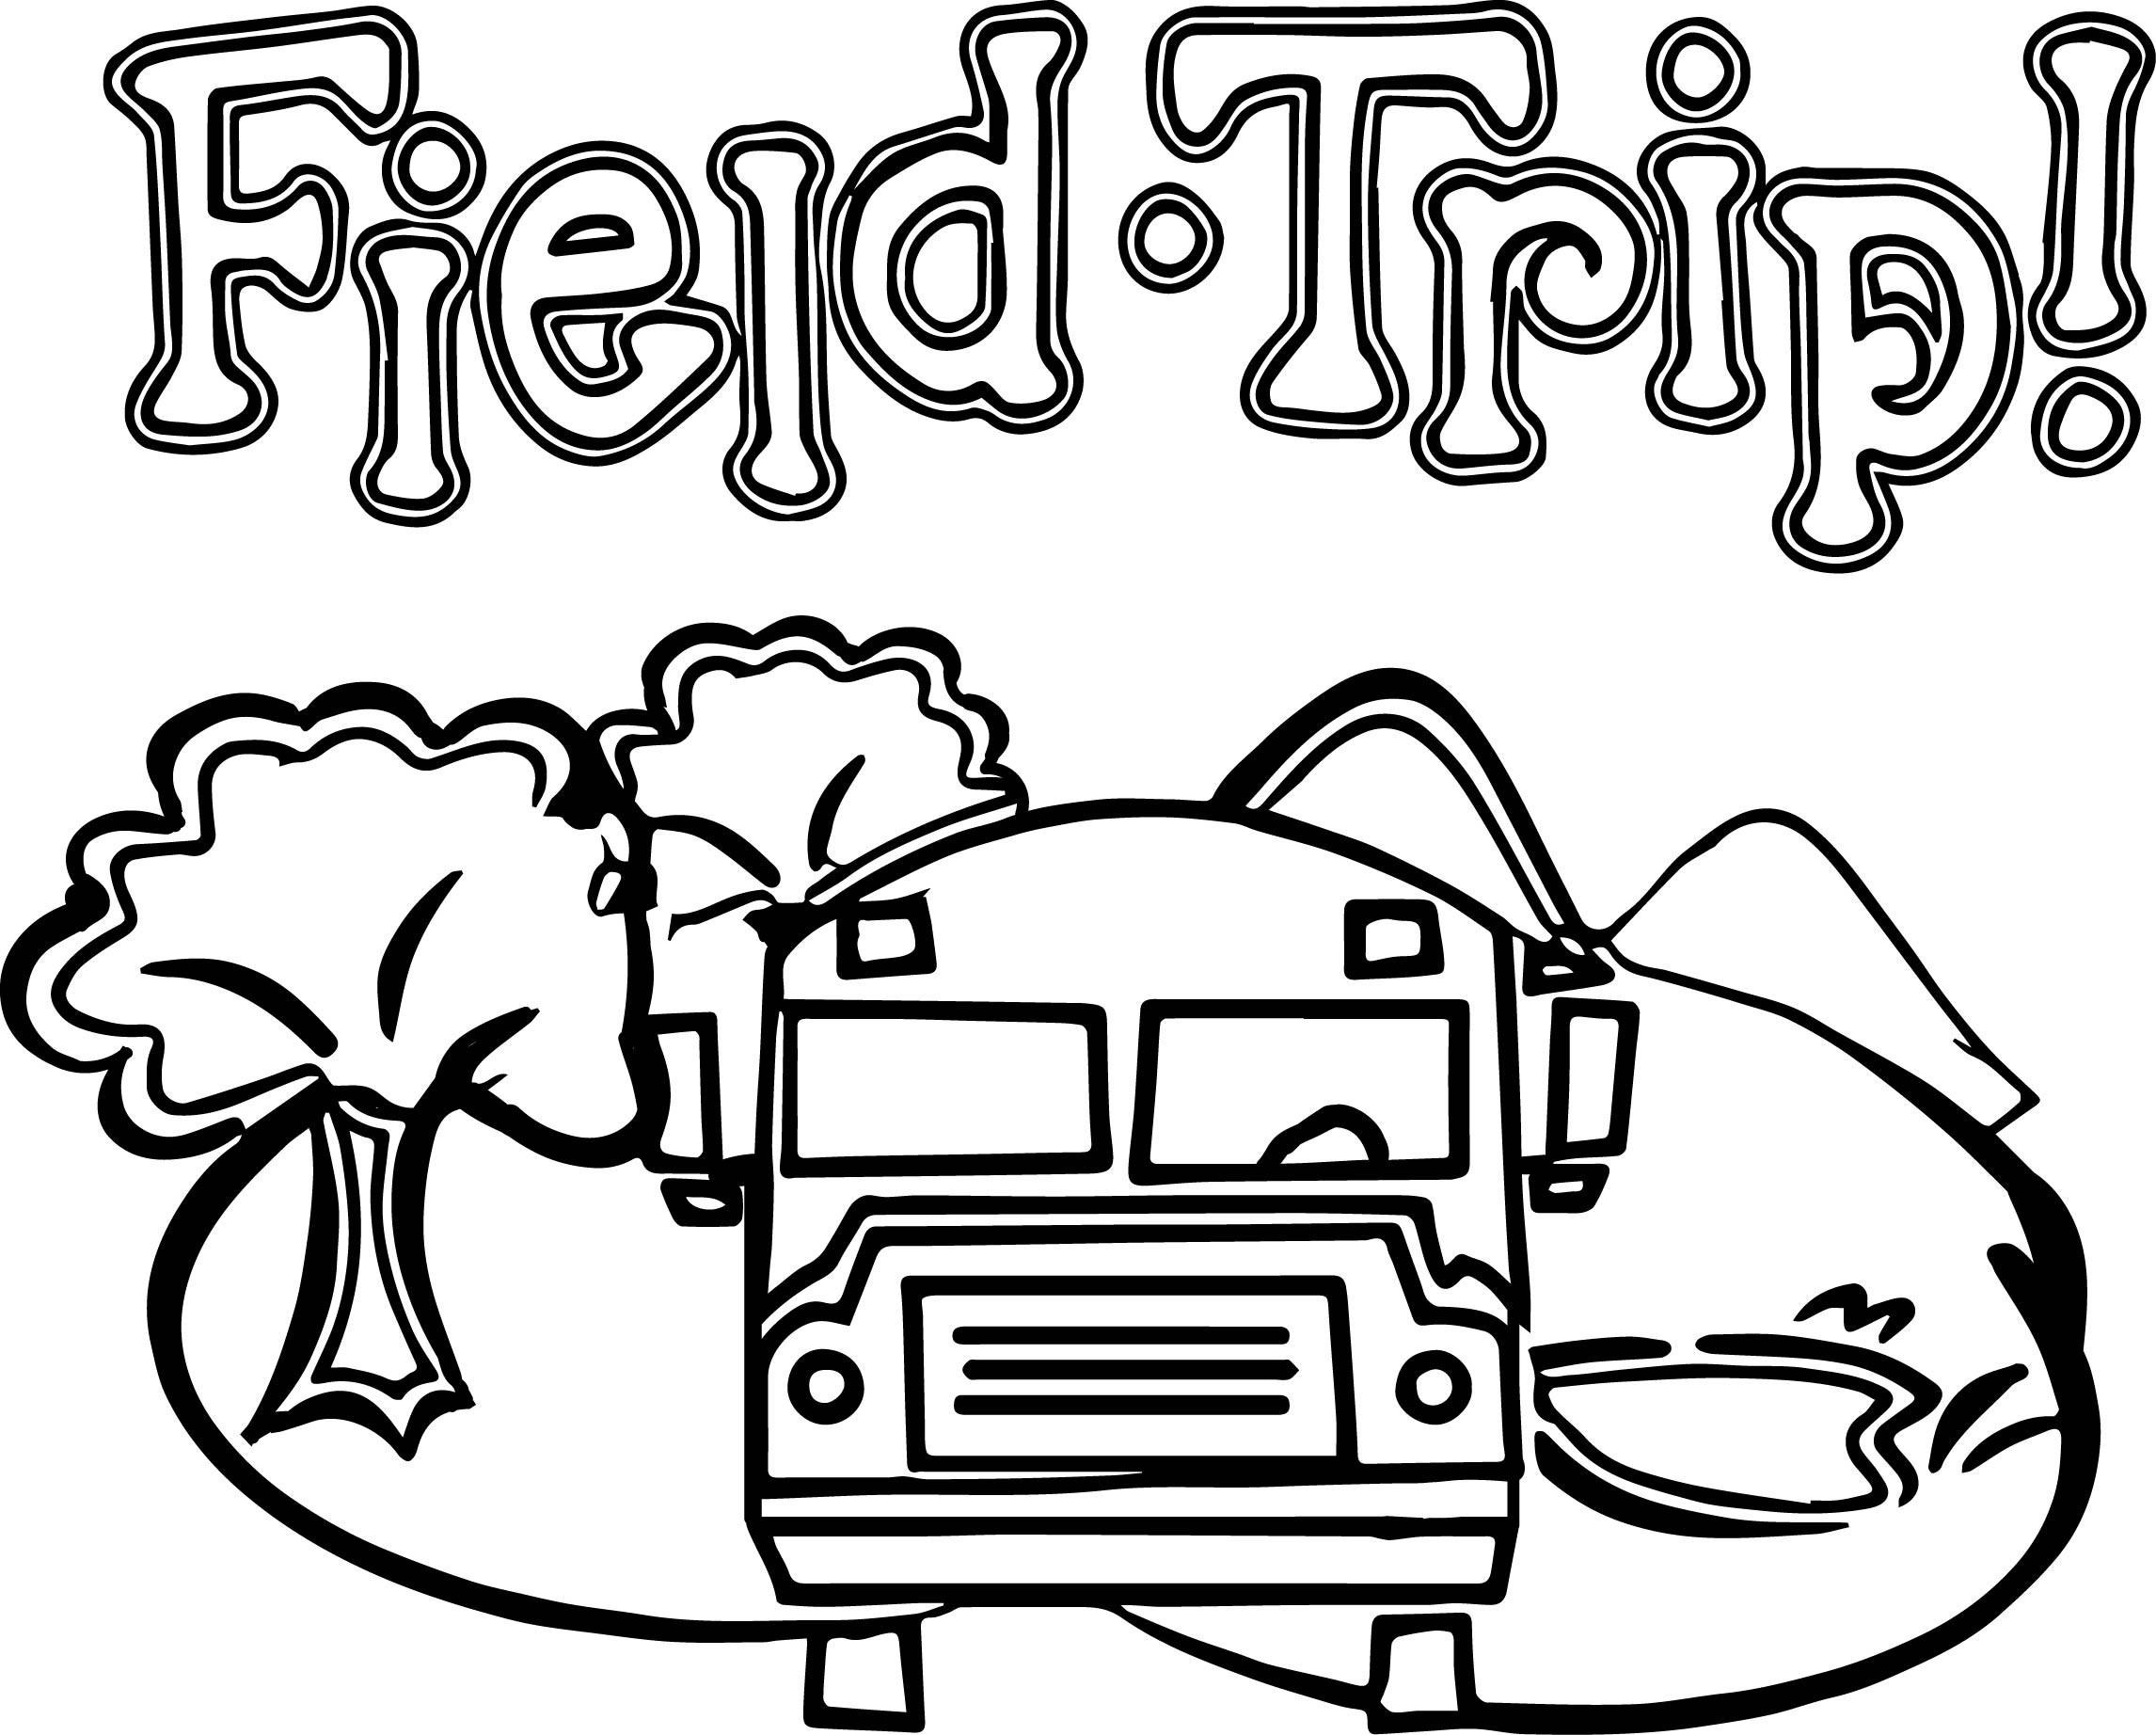 Field trip clipart black and white png svg transparent 28+ Collection Of Field Trip Clipart Black And White | High Quality ... svg transparent